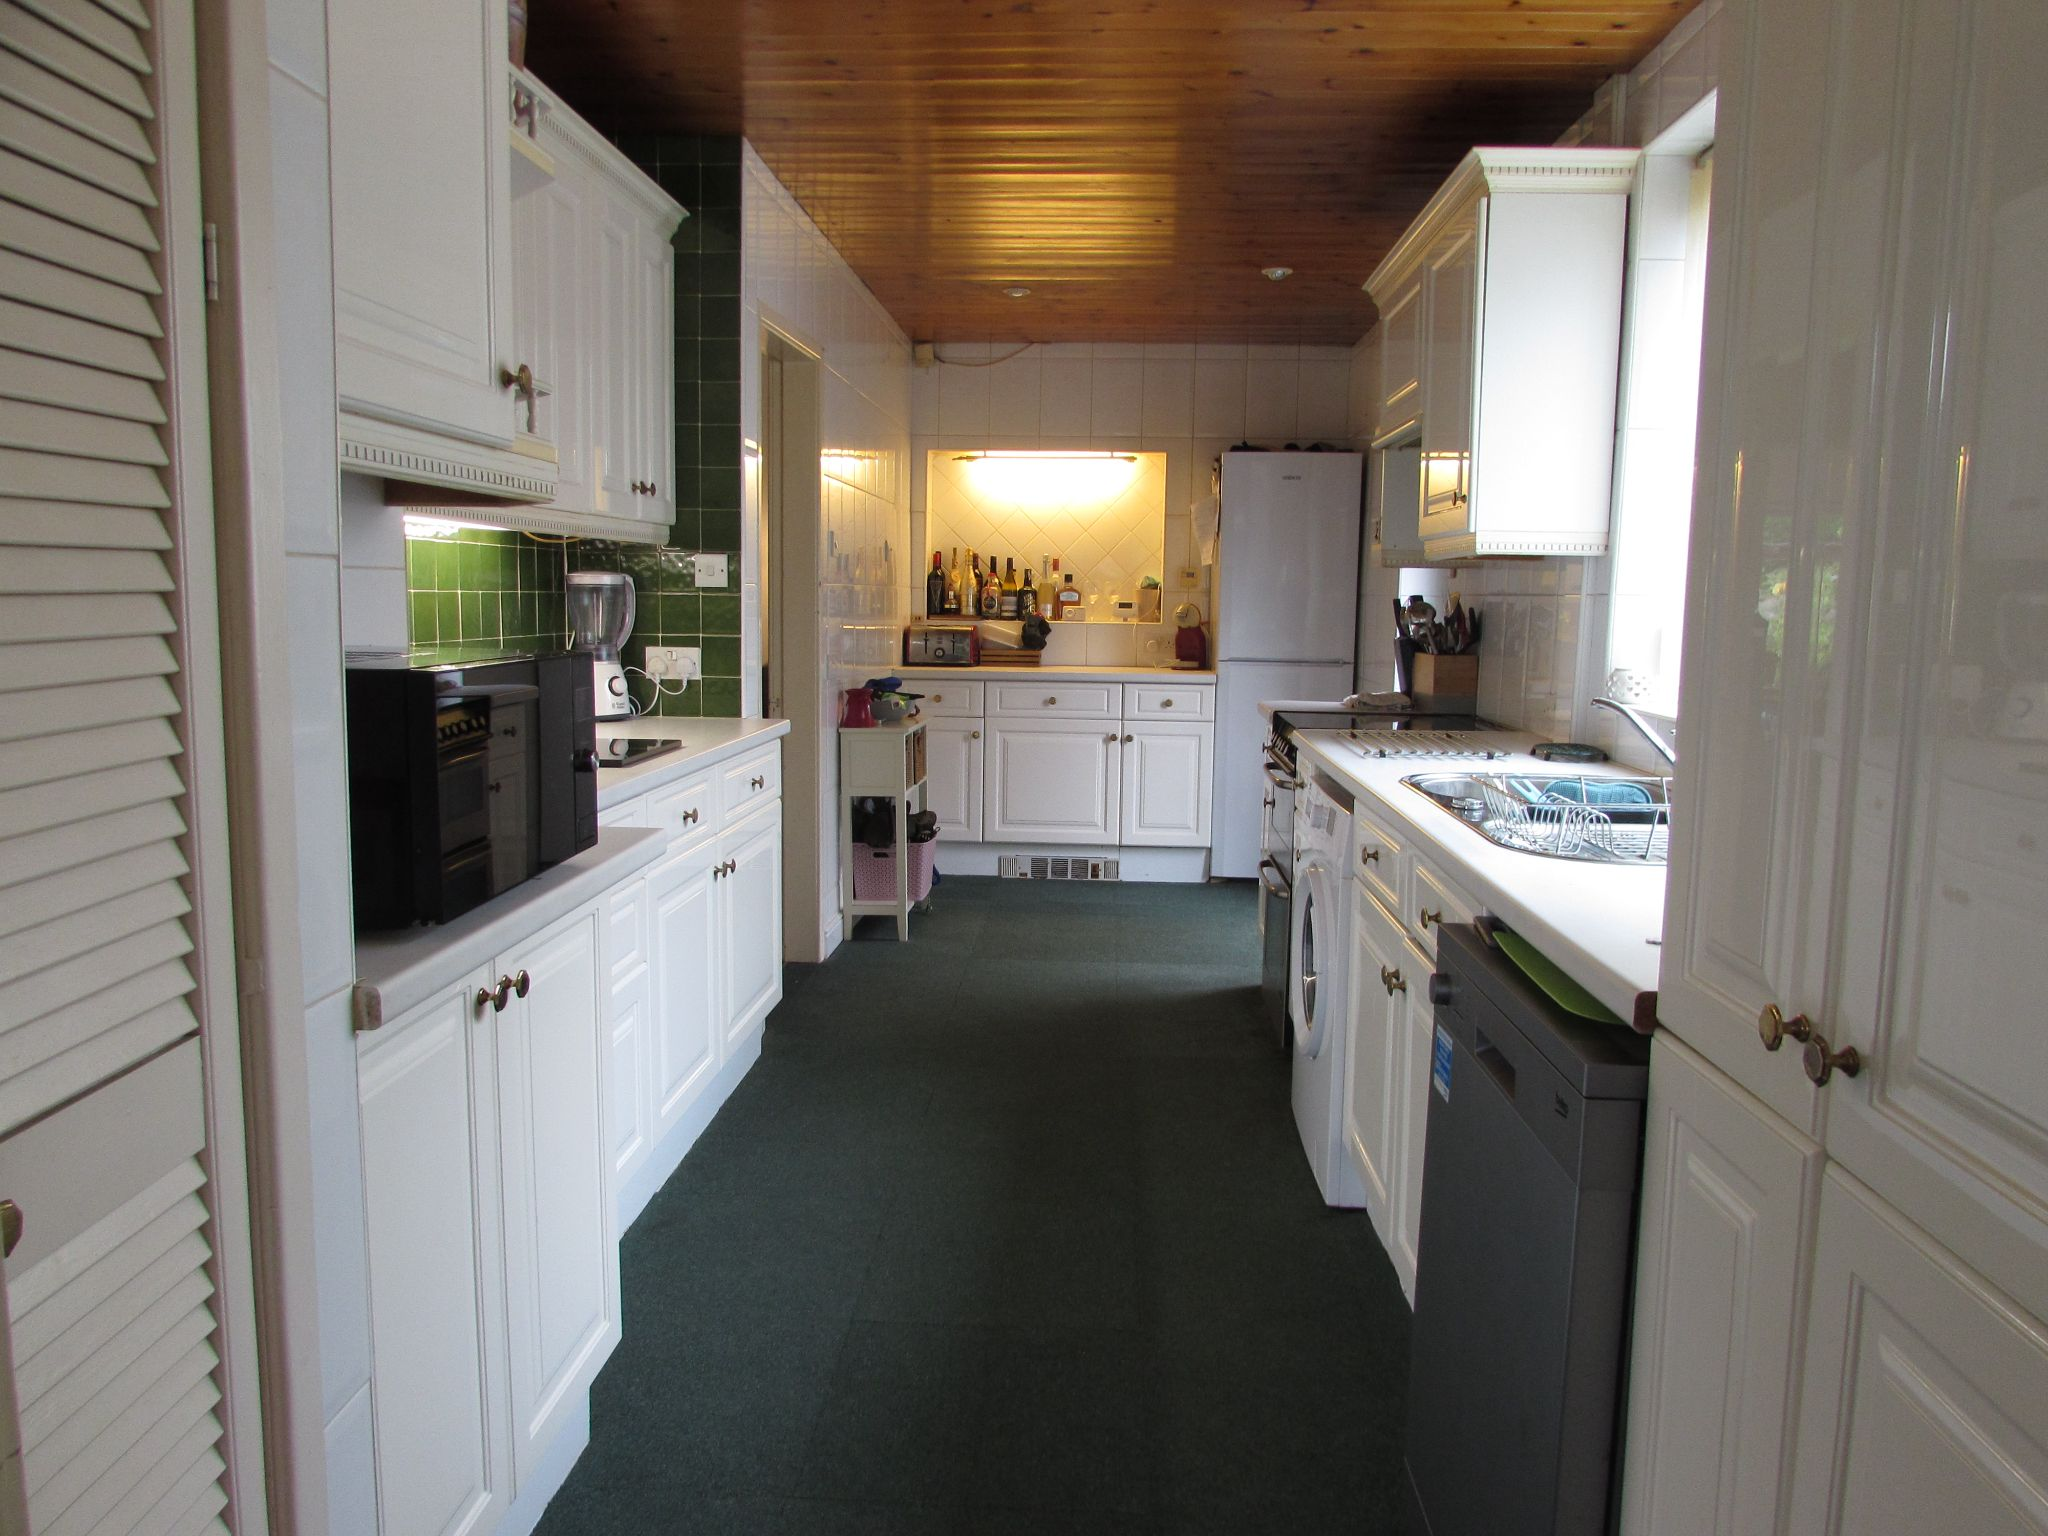 5 Bedroom Semi-detached House For Sale - Photograph 20